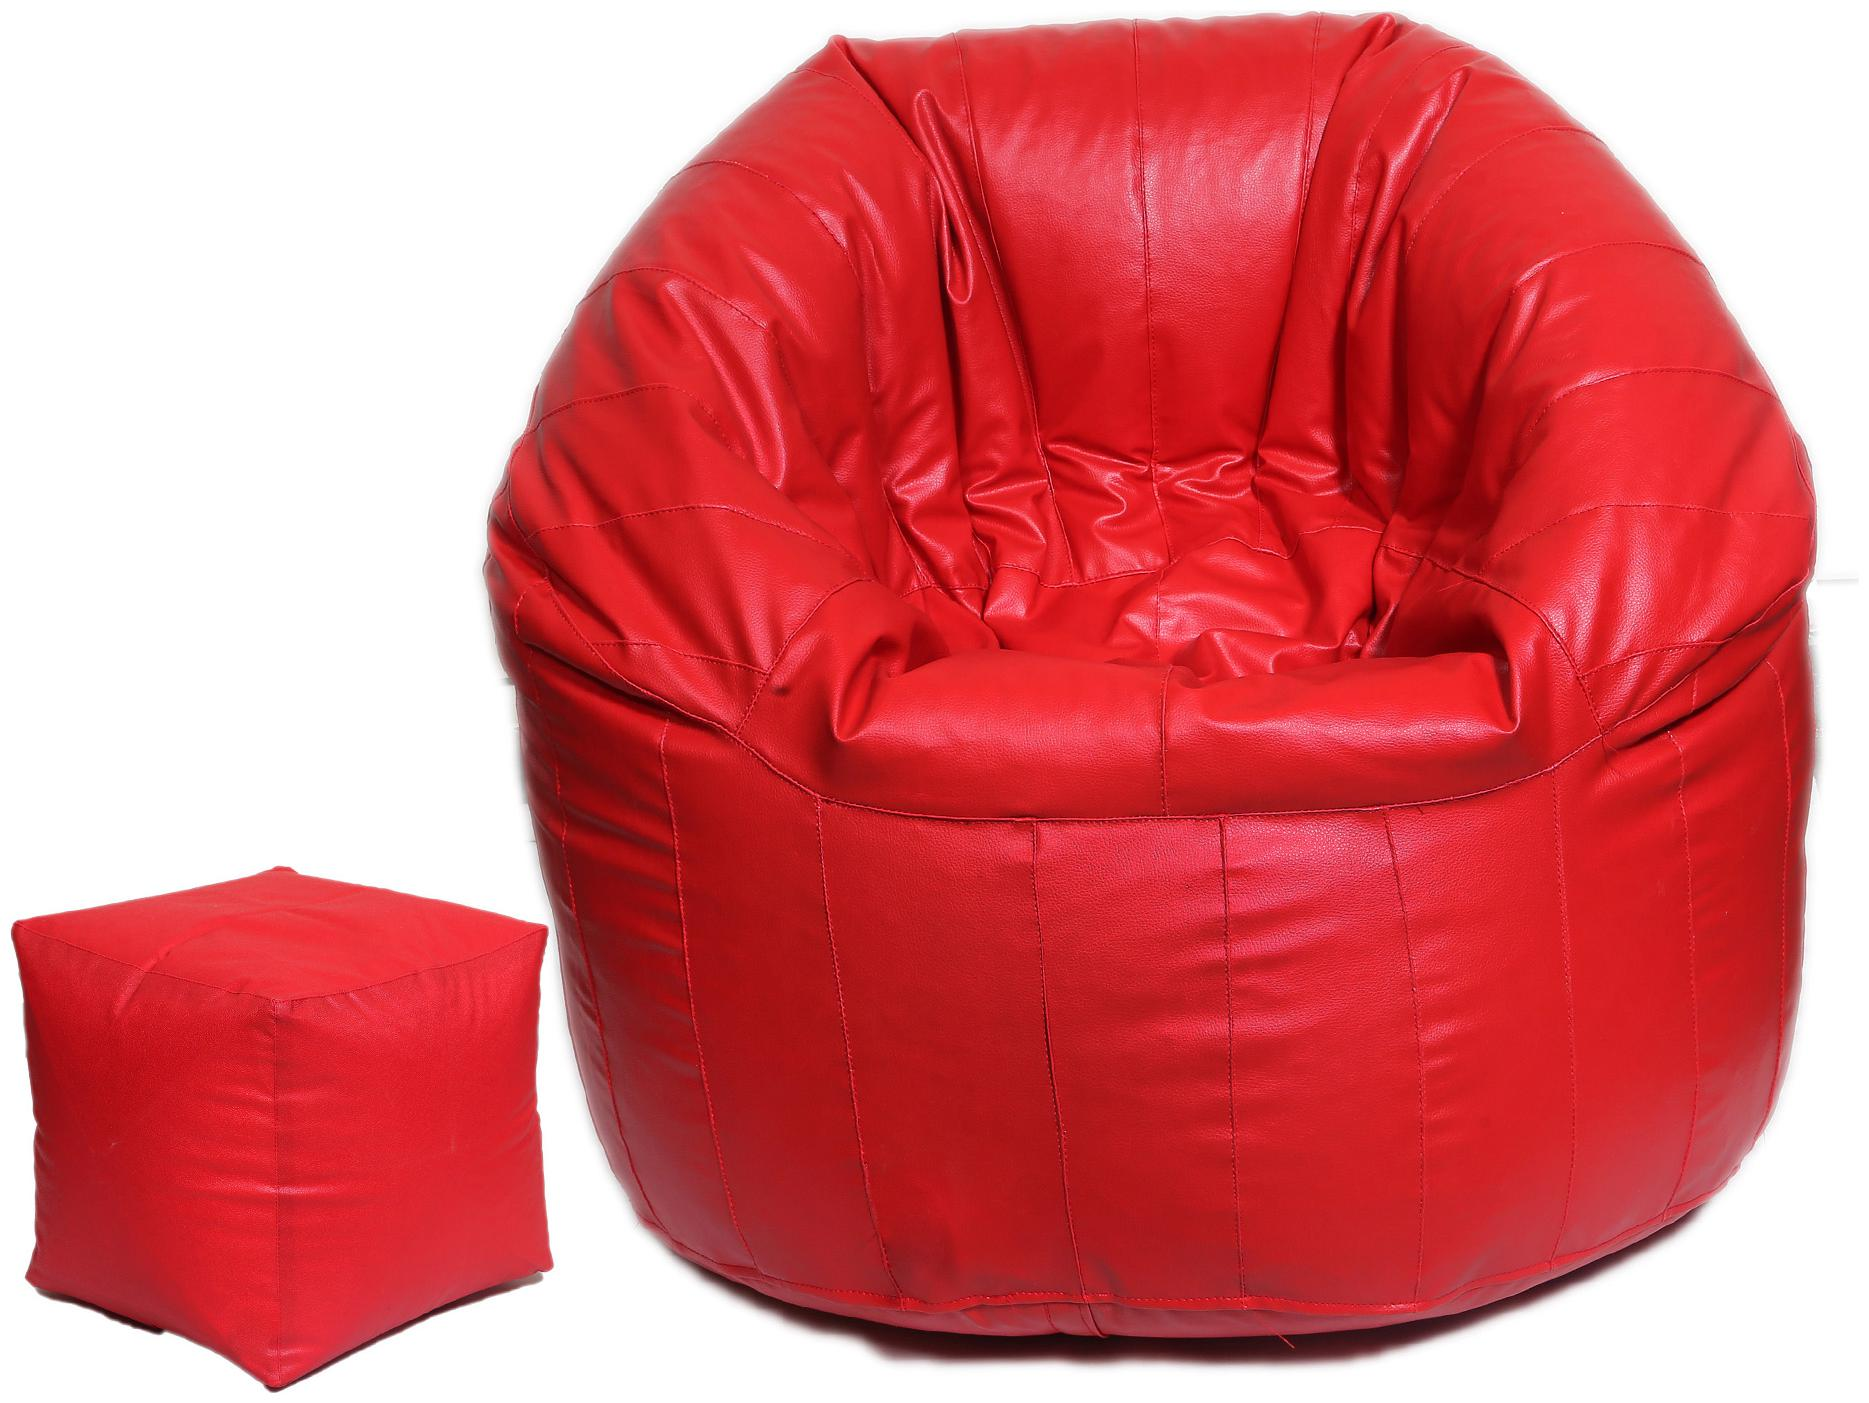 Fine Furnishing Combo Classic XXXL Bean Bag Cover with Square Puffy Footstool...